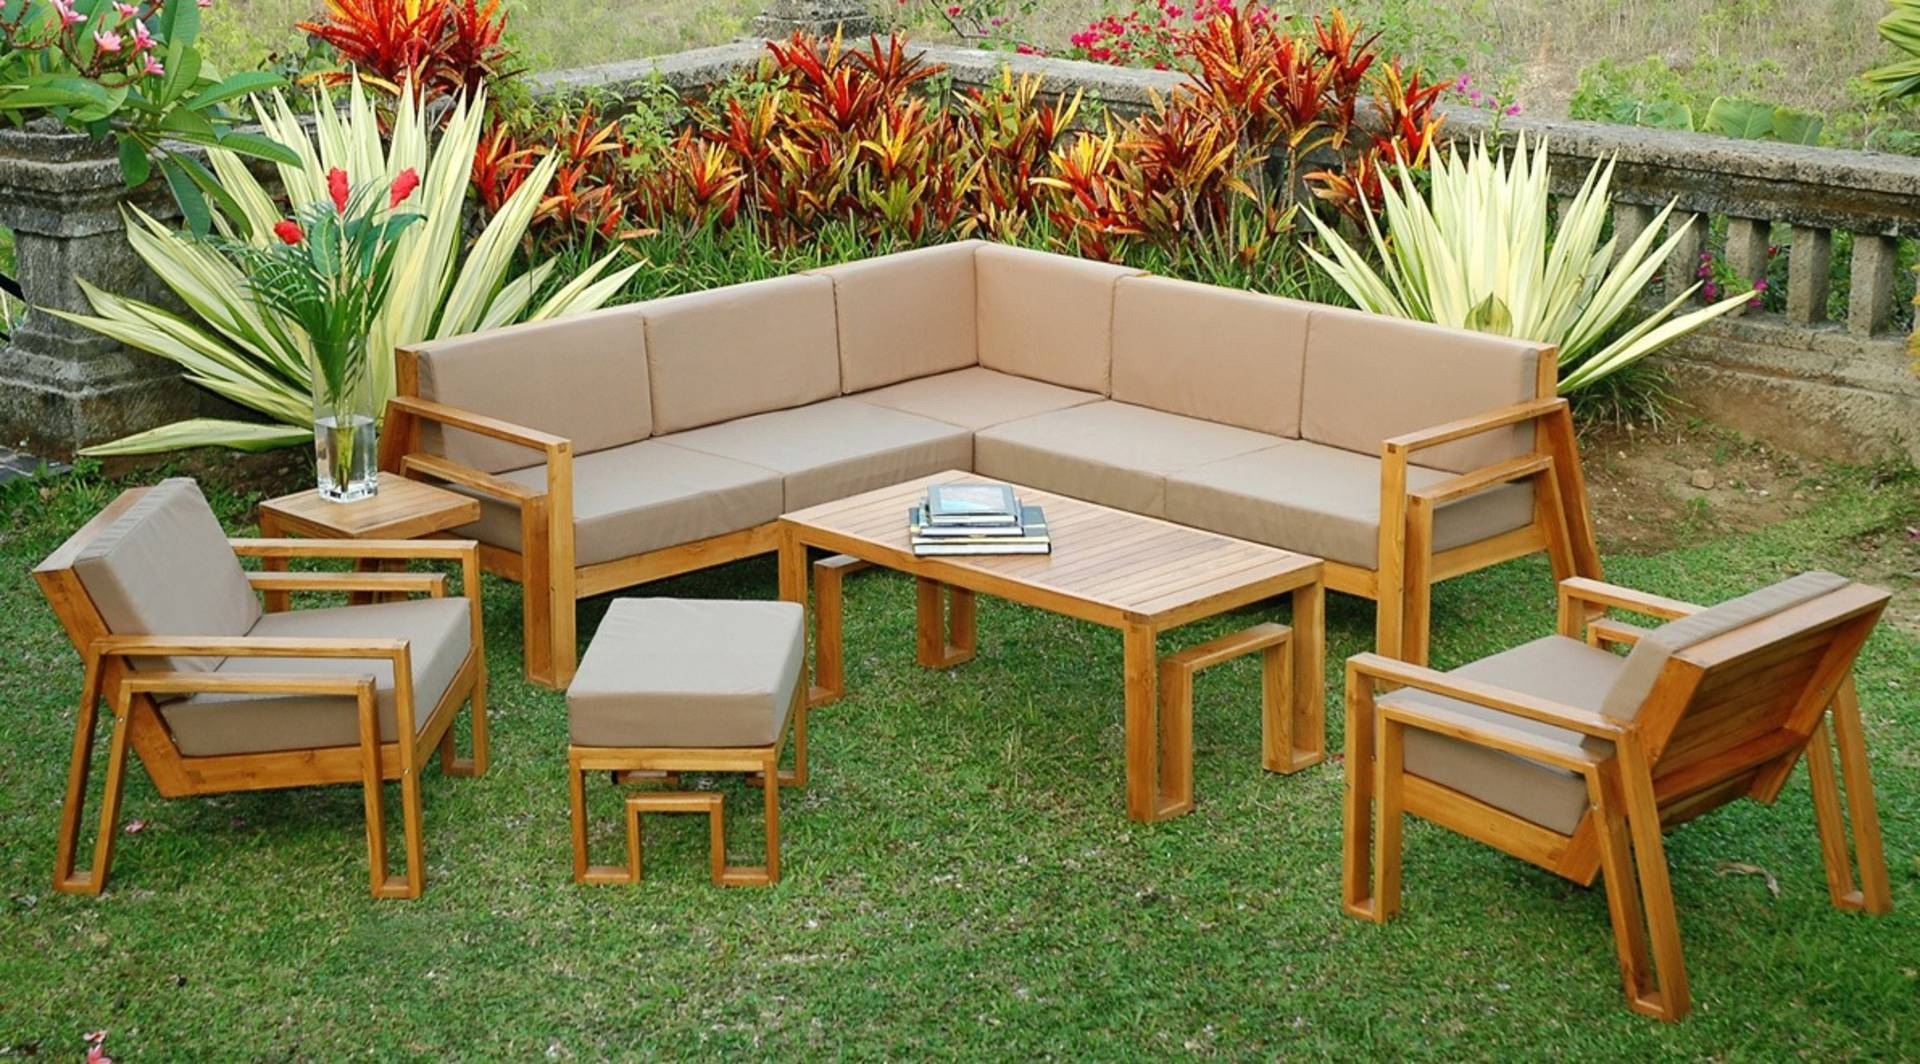 Weatherproof furniture for your outdoor living space for Outdoor living furniture